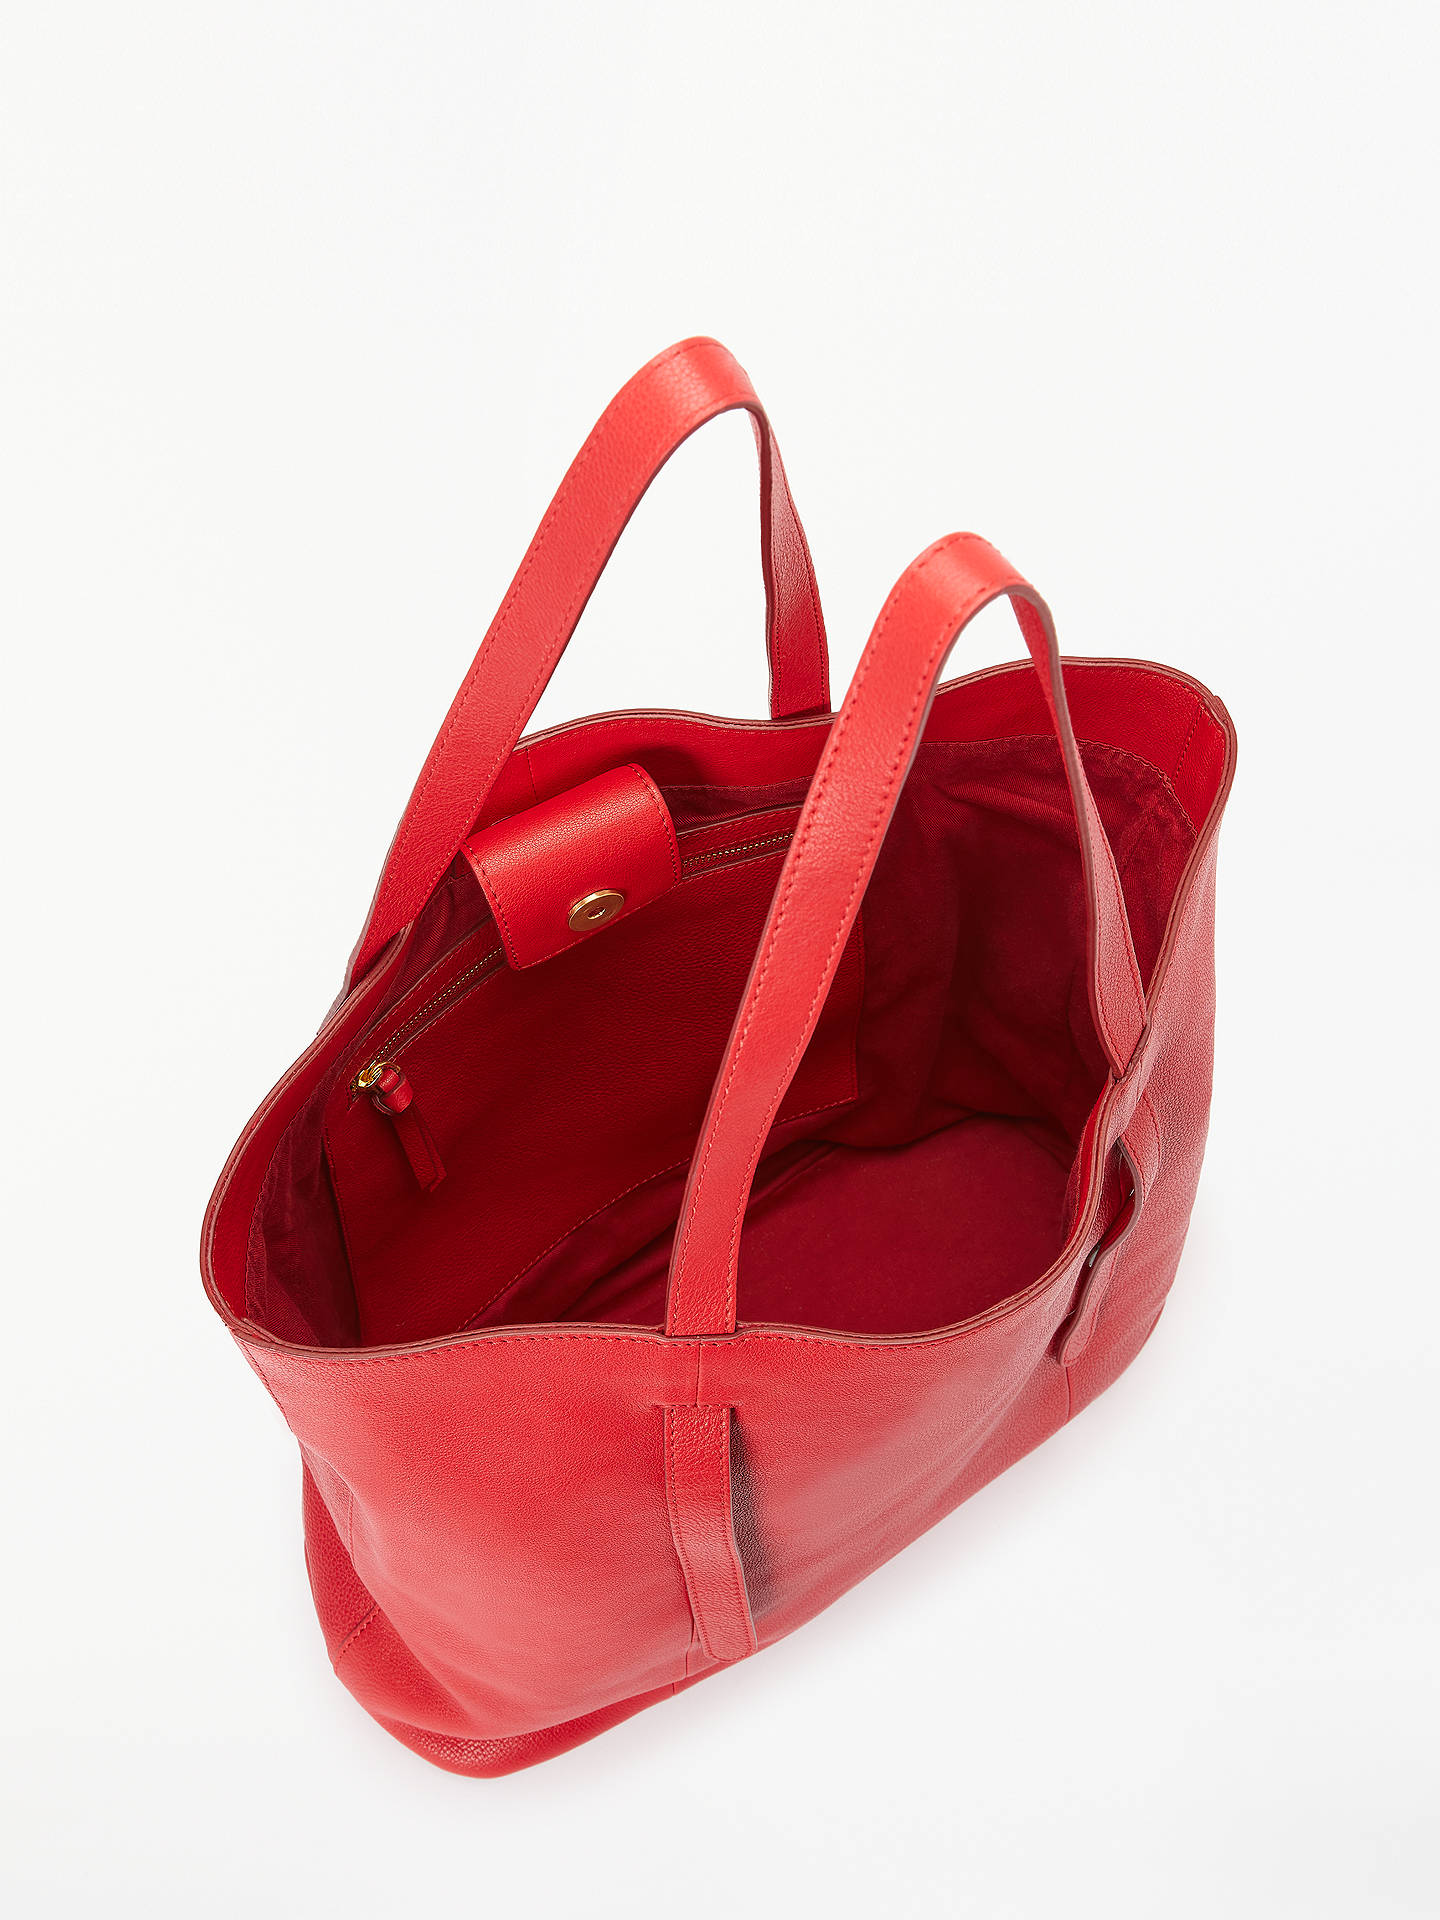 BuyJohn Lewis & Partners Cecilia Leather North/South Tote Bag, Red Online at johnlewis.com